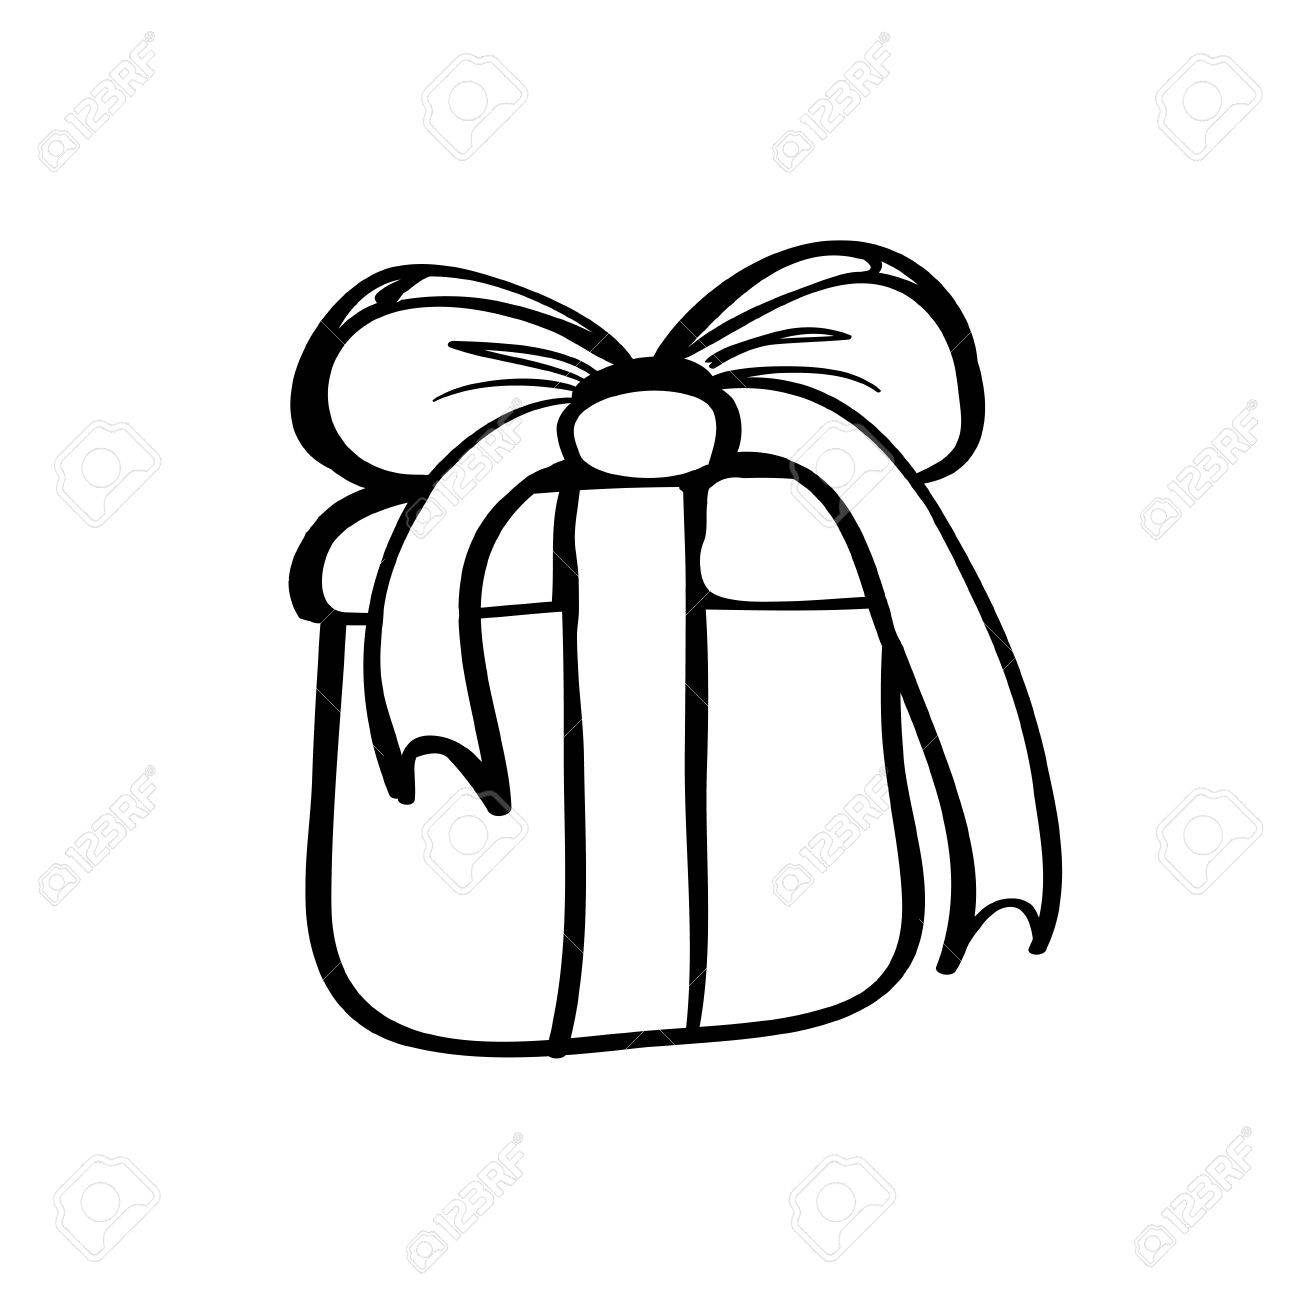 1300x1300 Vector Hand Drawn Gift Box With Bow. Black Sketch On White